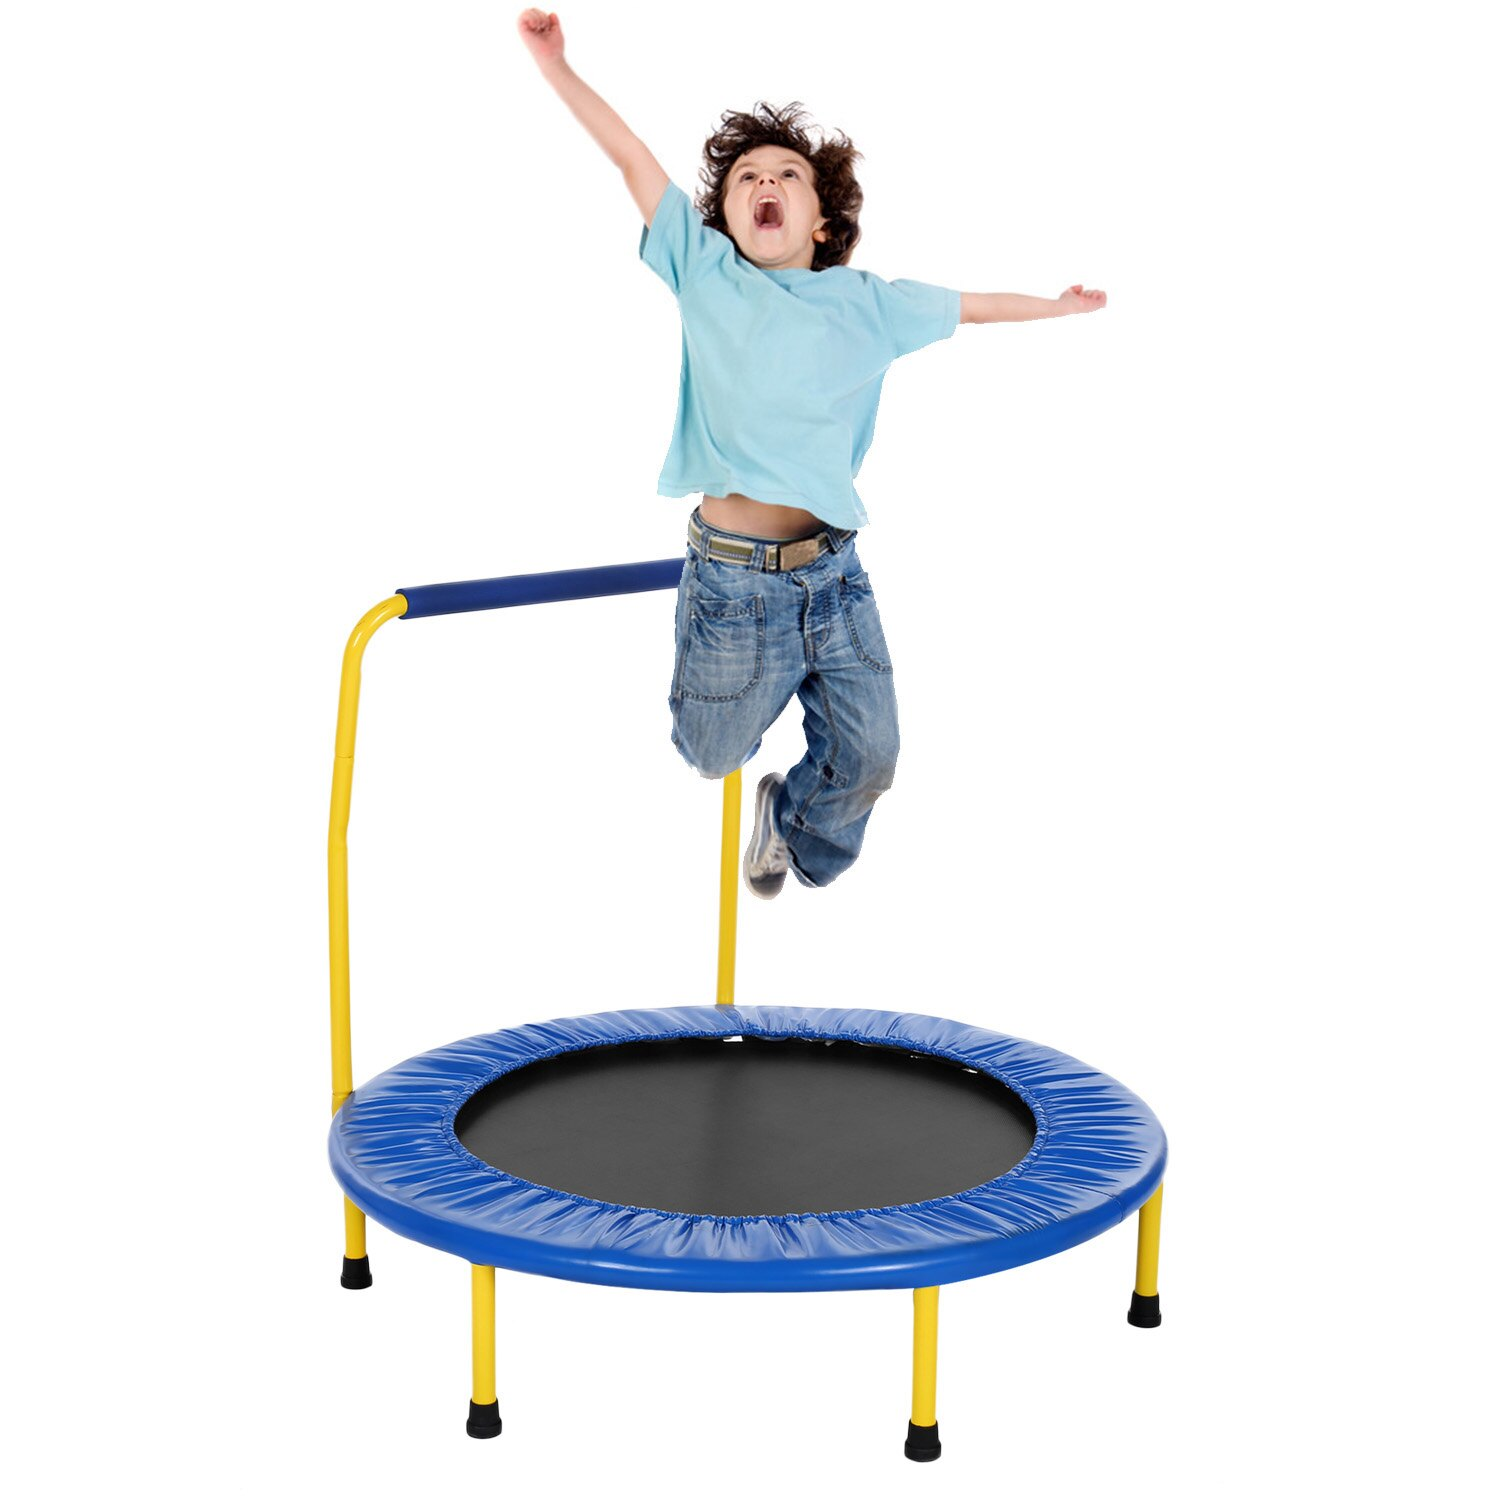 Kids Foldable Durable Construction Safe Trampoline with Padded Frame 2